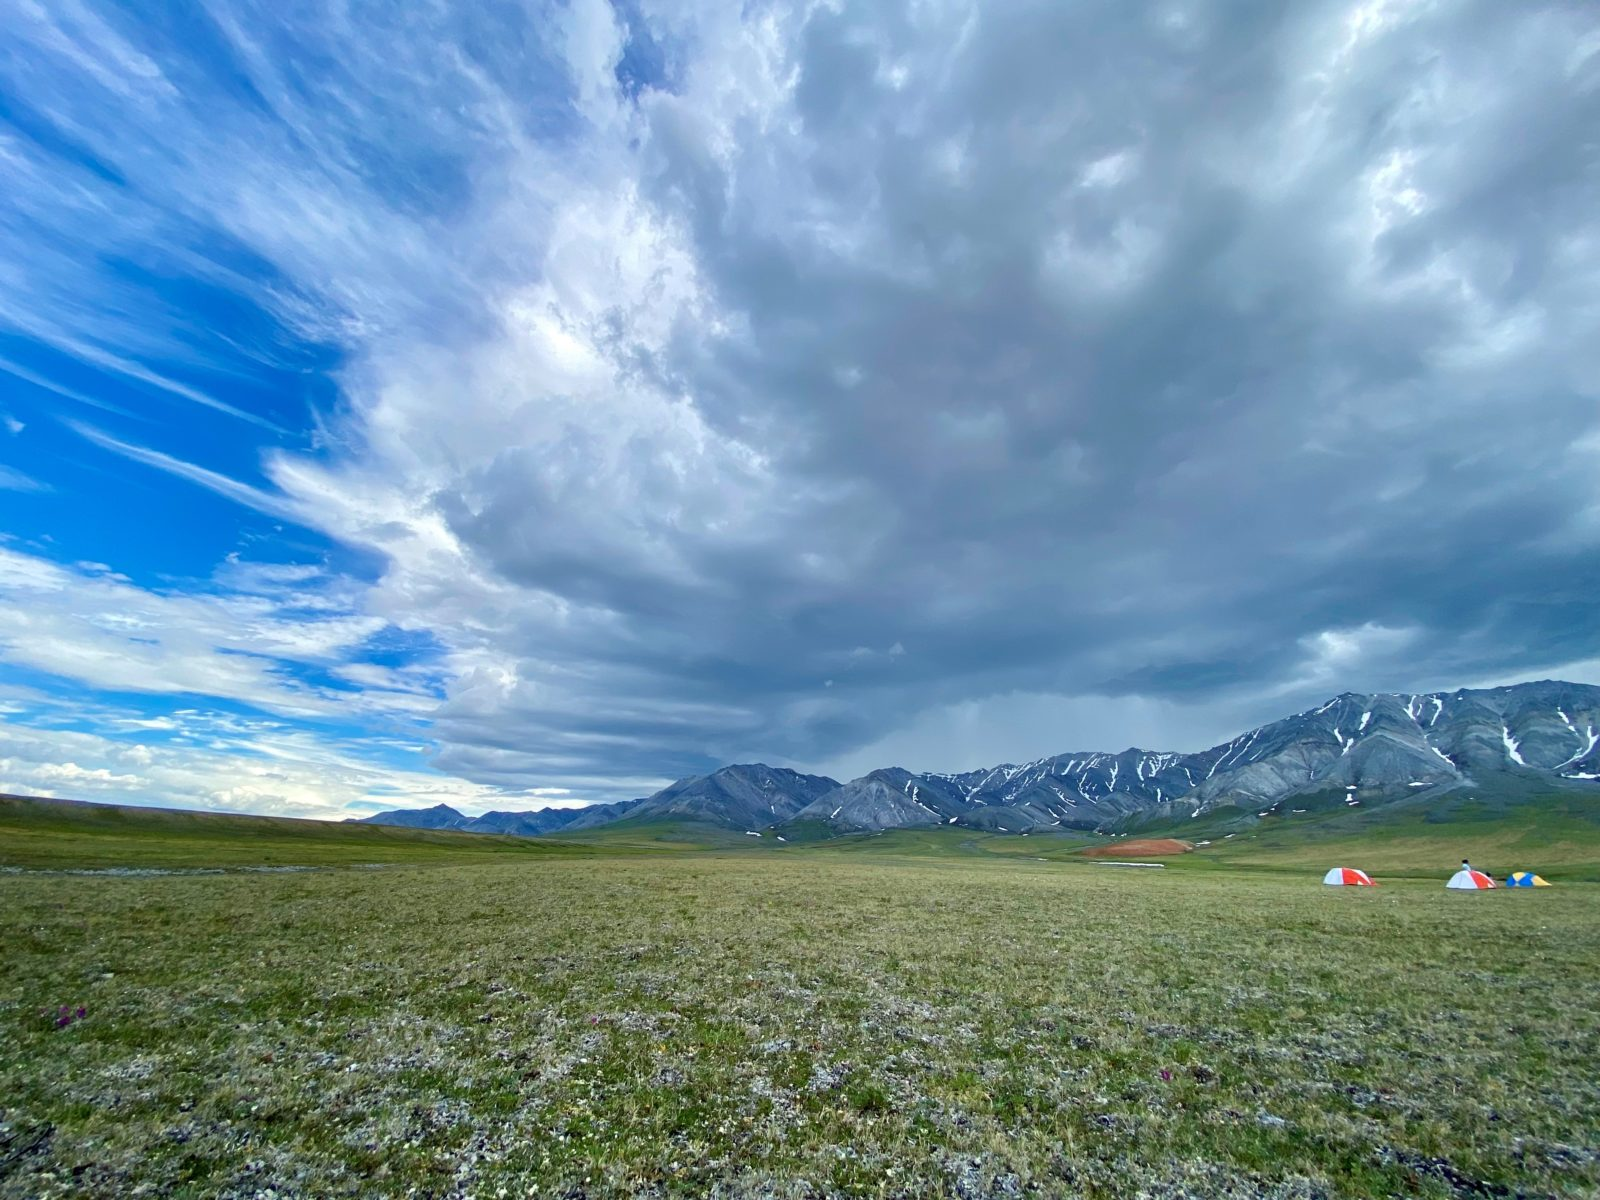 Arctic Refuge awe. A thunderstorm butts against blue sky over the distant mountains and tundra in the foreground, with tents in the distance to the right.